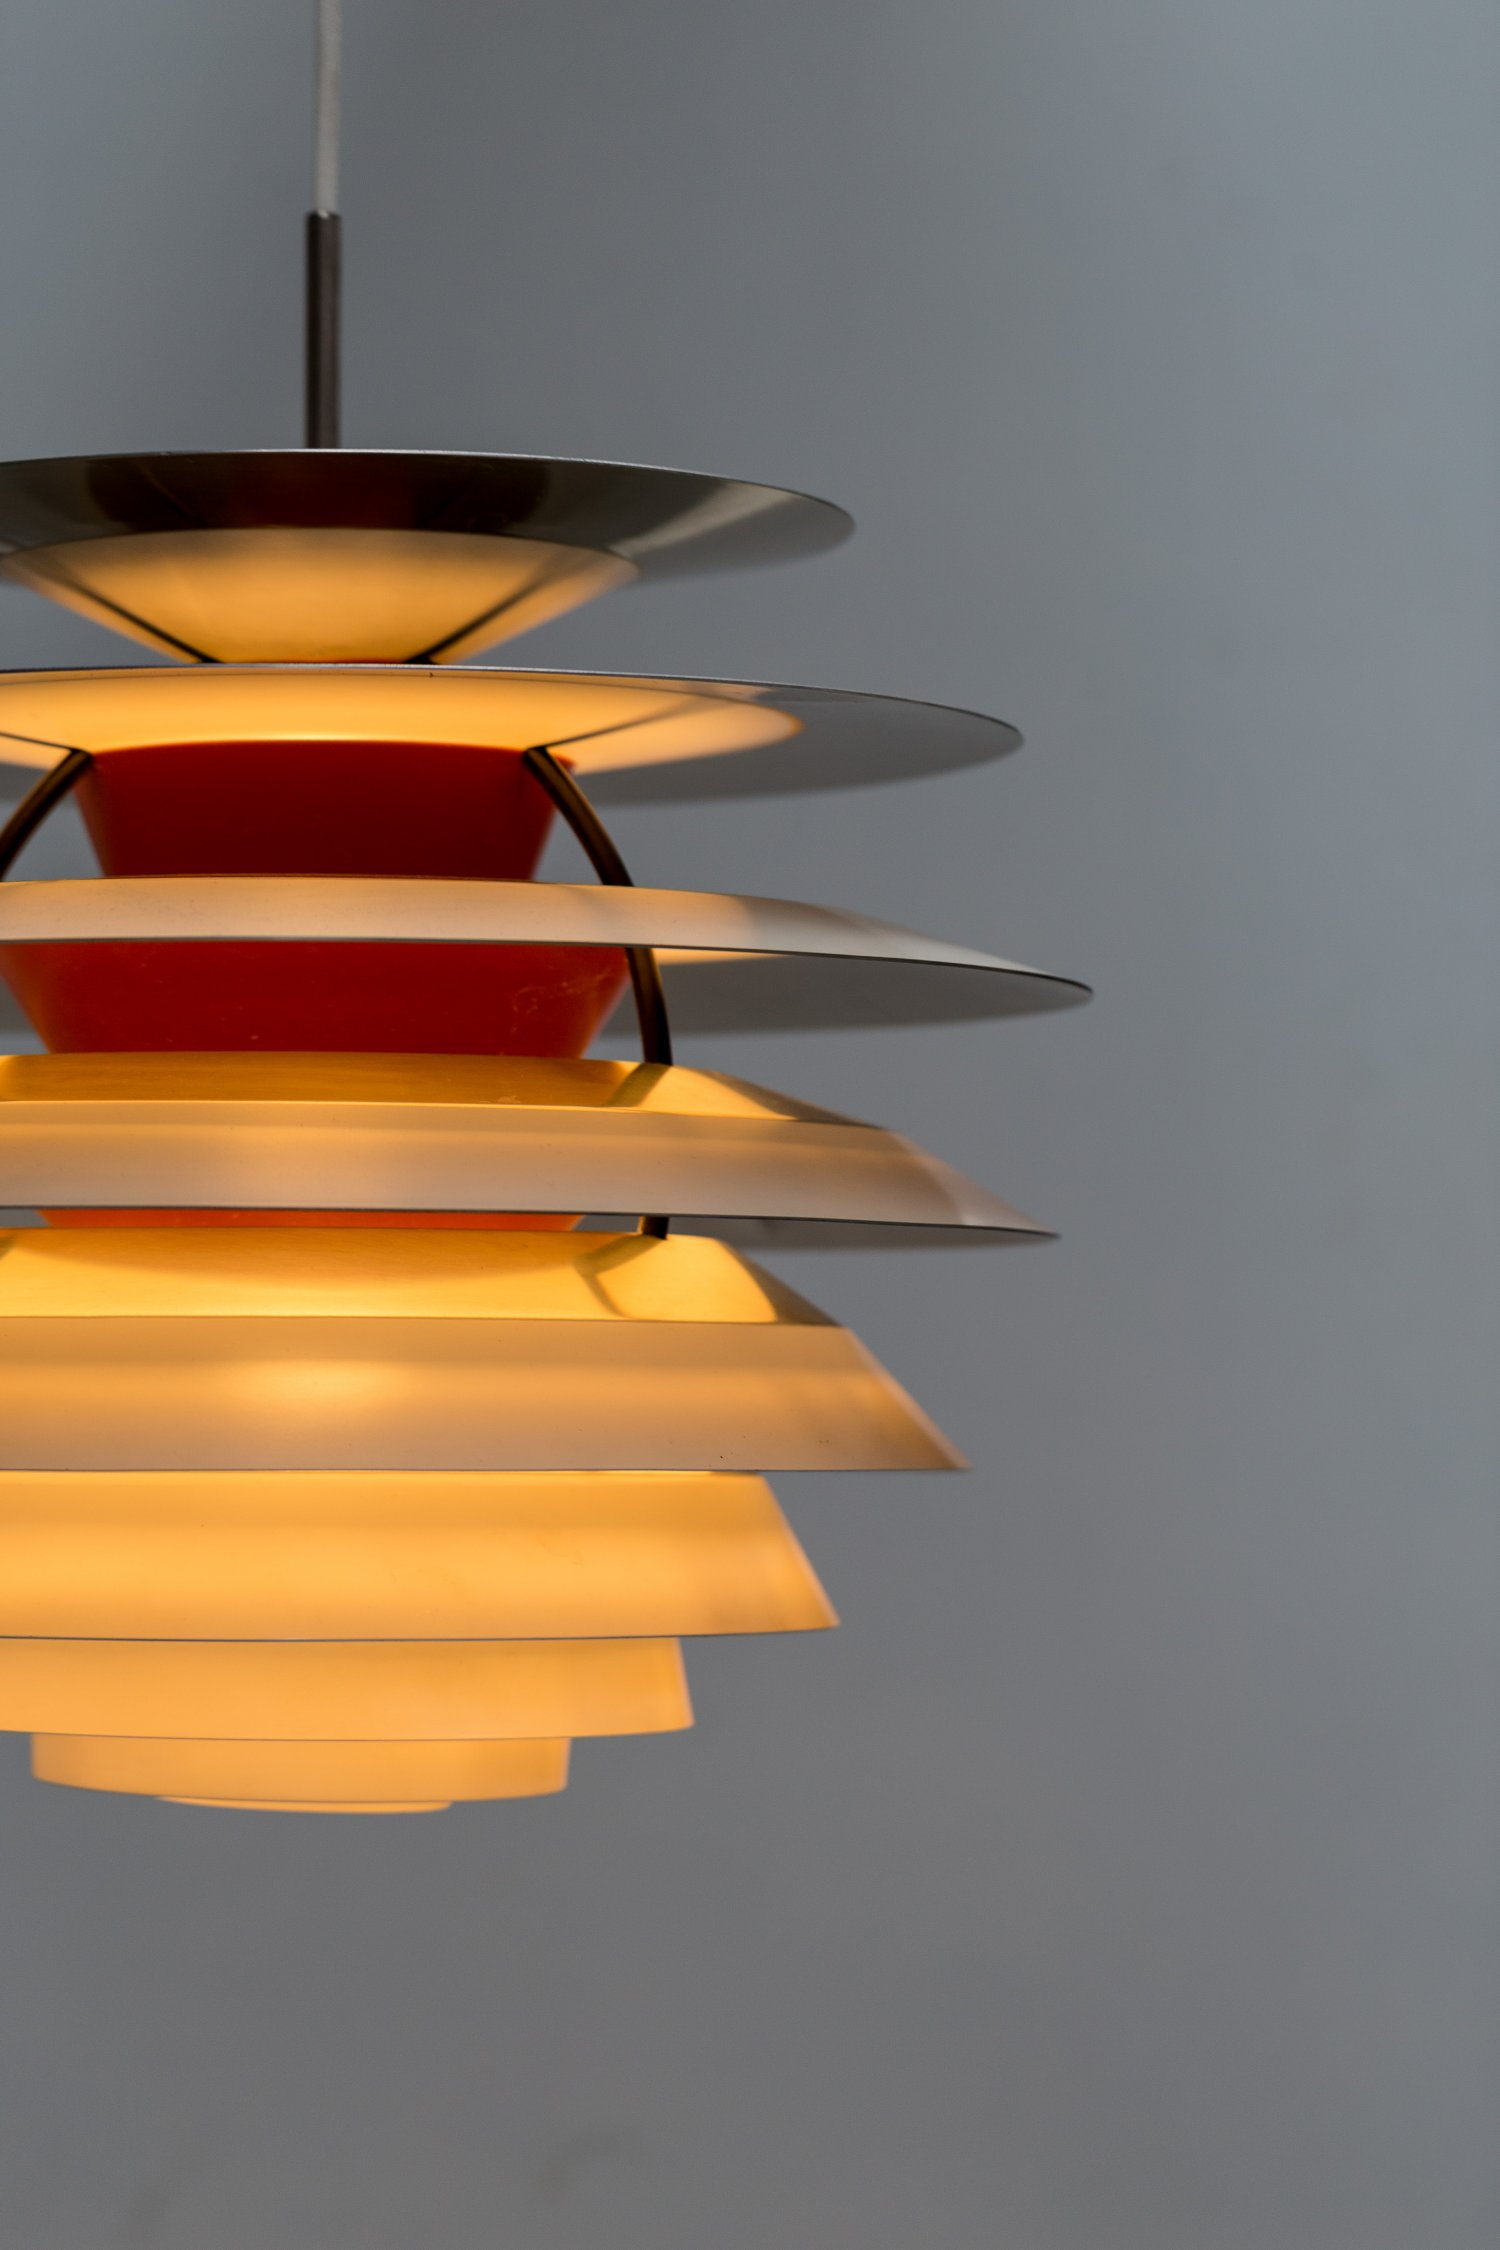 Contrast by Poul Henningsen from Louis Poulsen